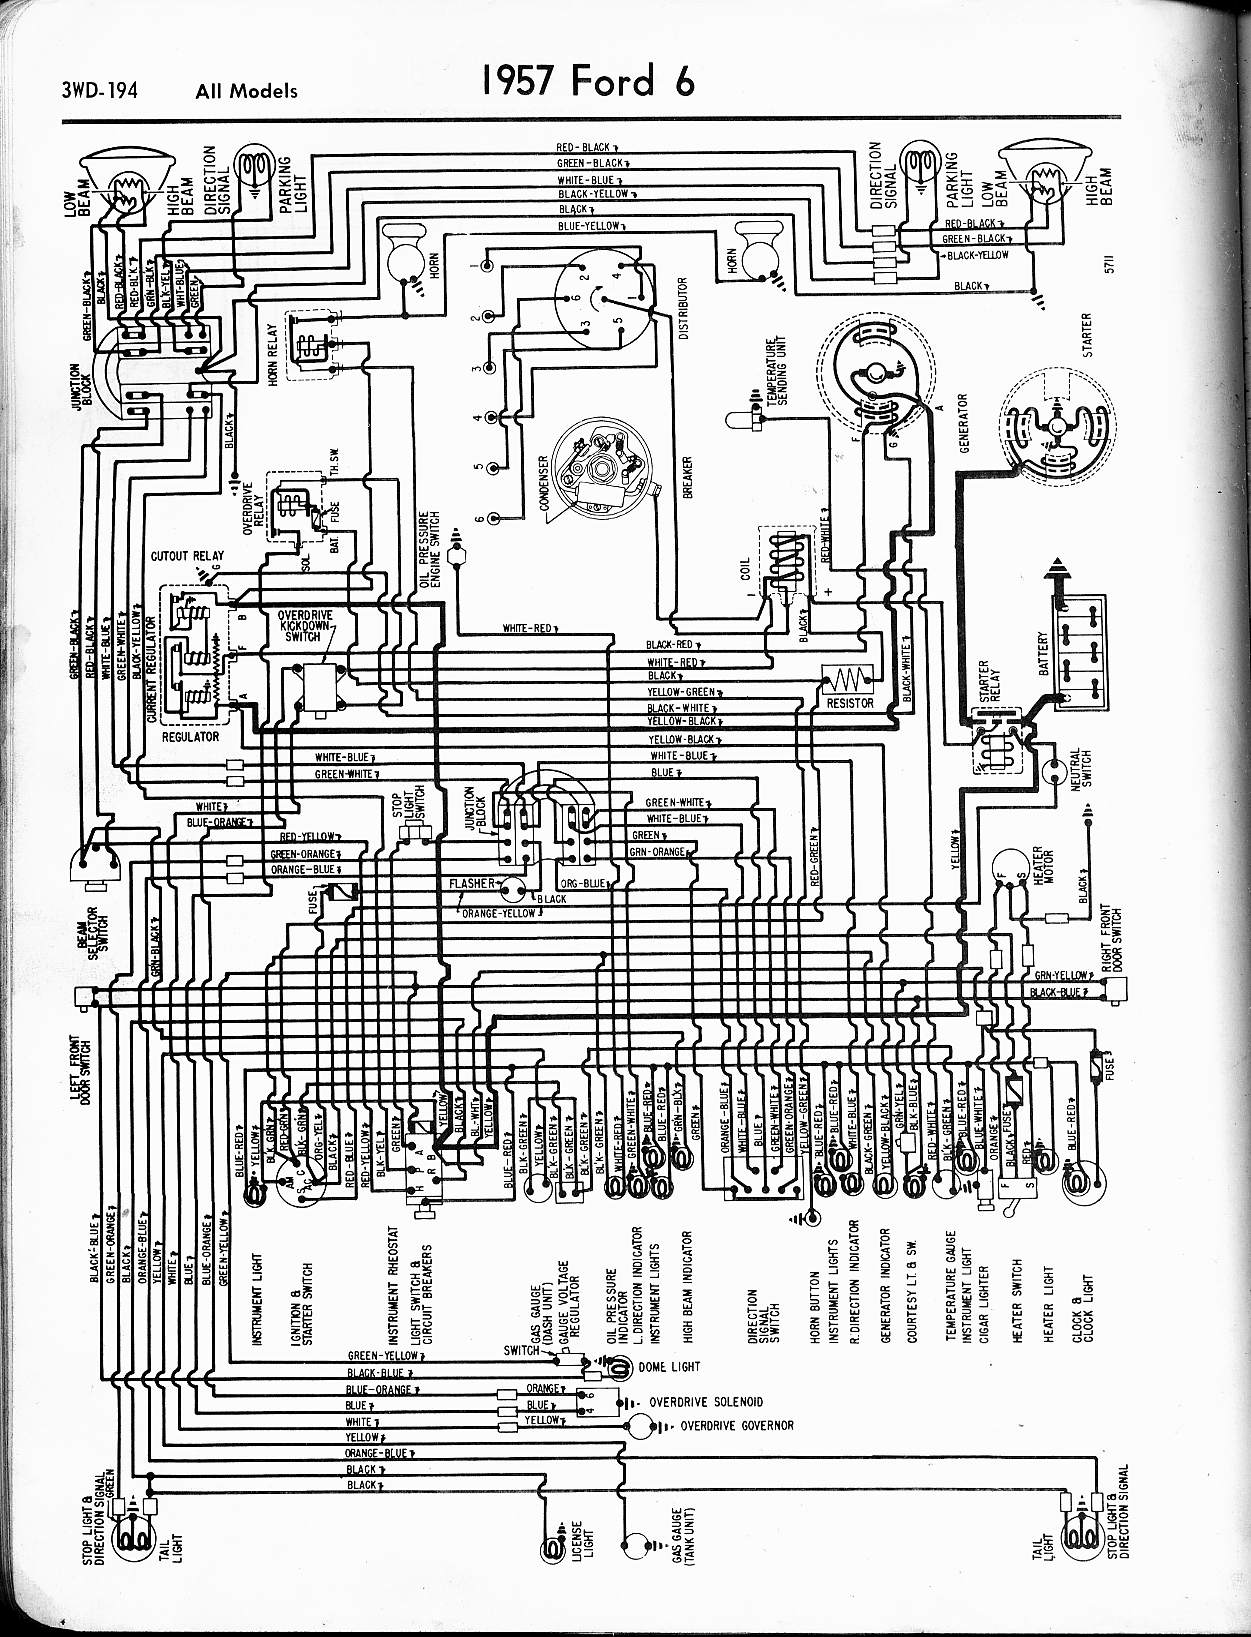 Ford Diagrams 92 Mazda Truck Wiring Diagram 57 Drawing A